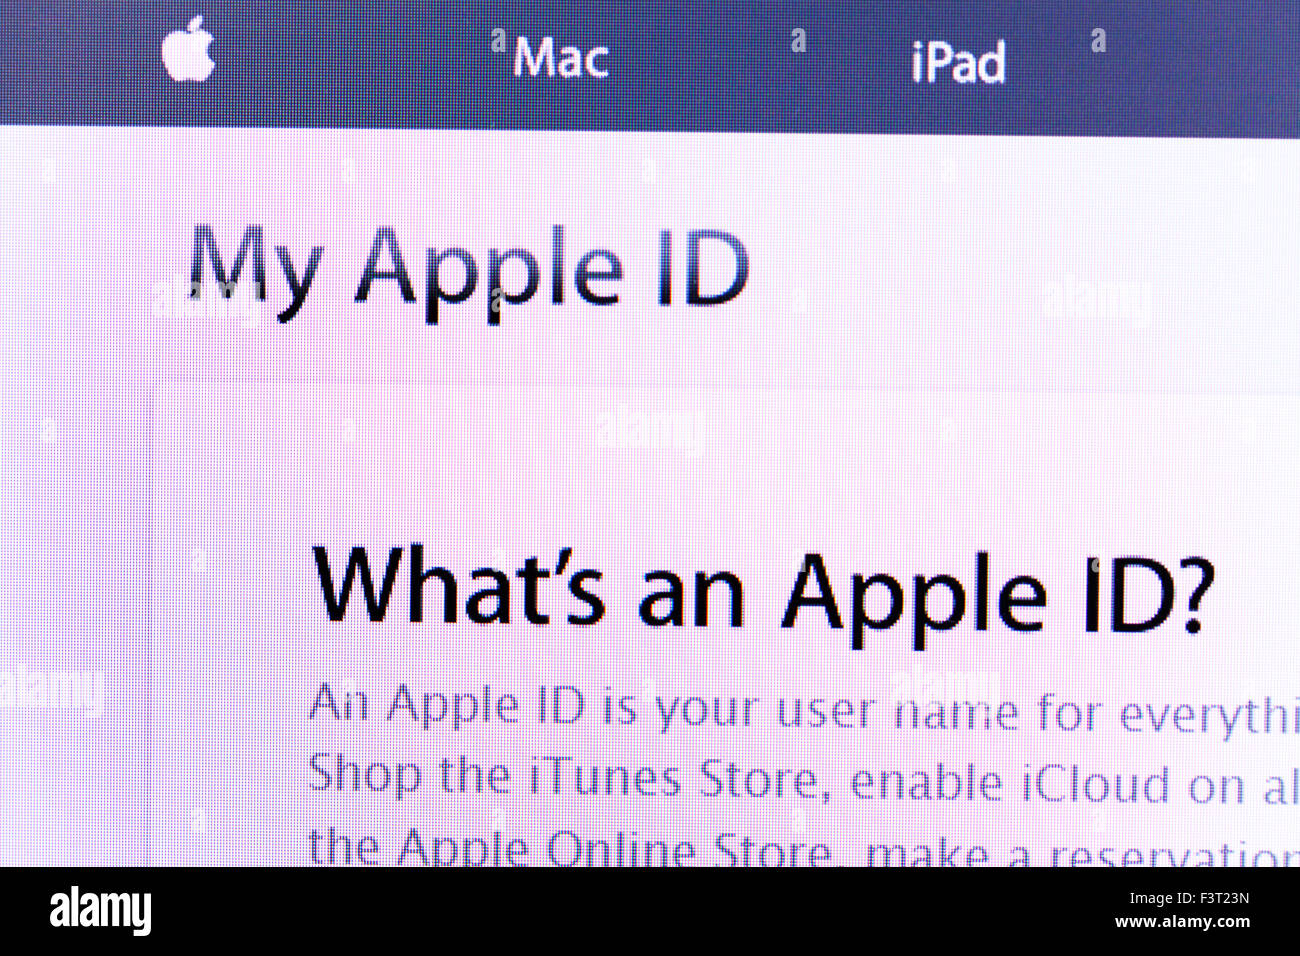 Apple ID store mac website homepage online screen screenshot web site internet net - Stock Image